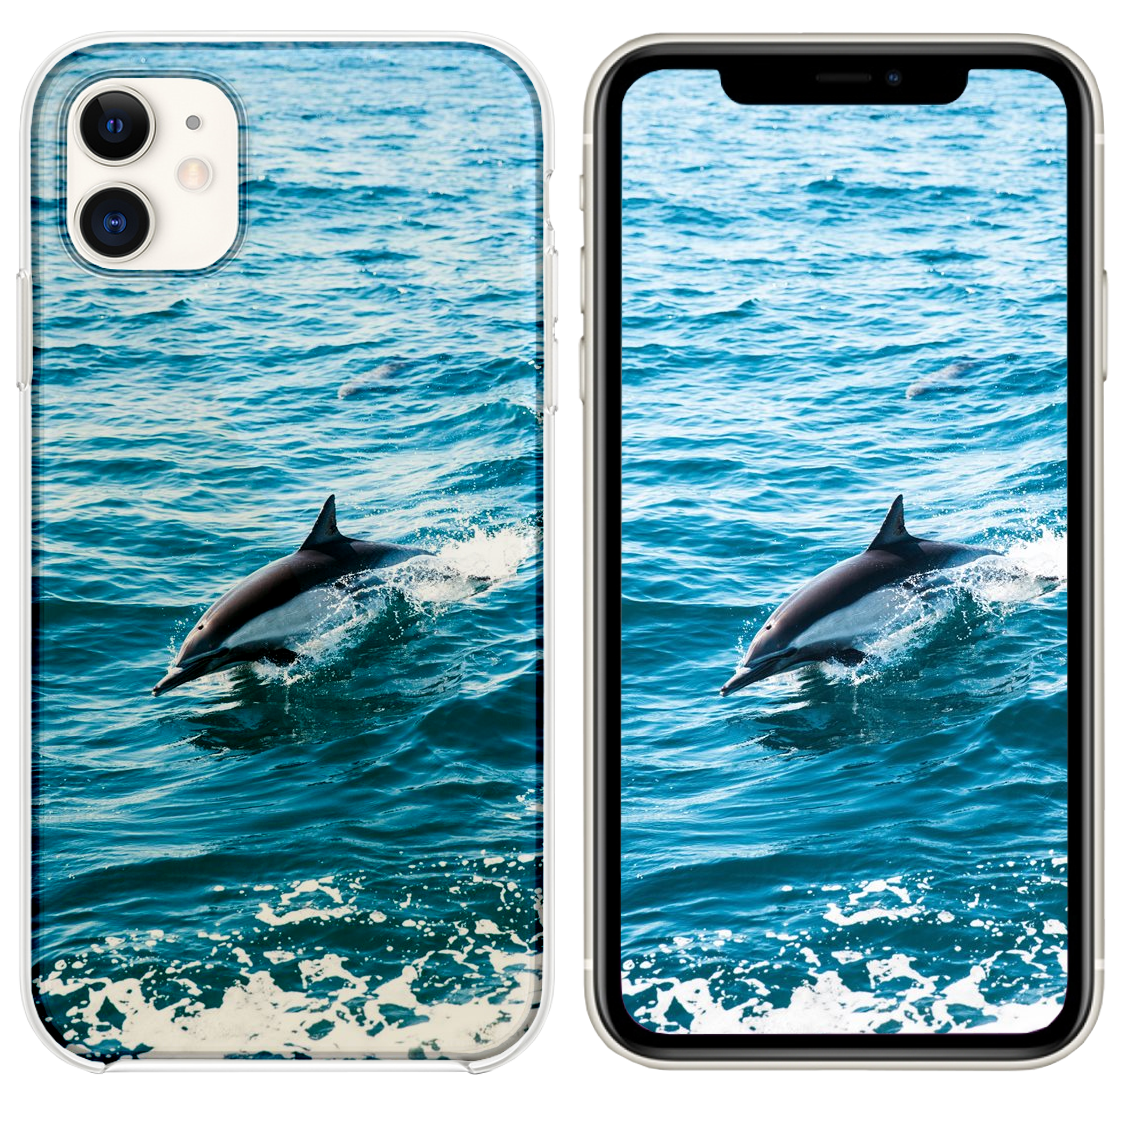 Dolphin Dive Iphone 11 Case And Wallpaper Iphone Wallpaper Iphone 11